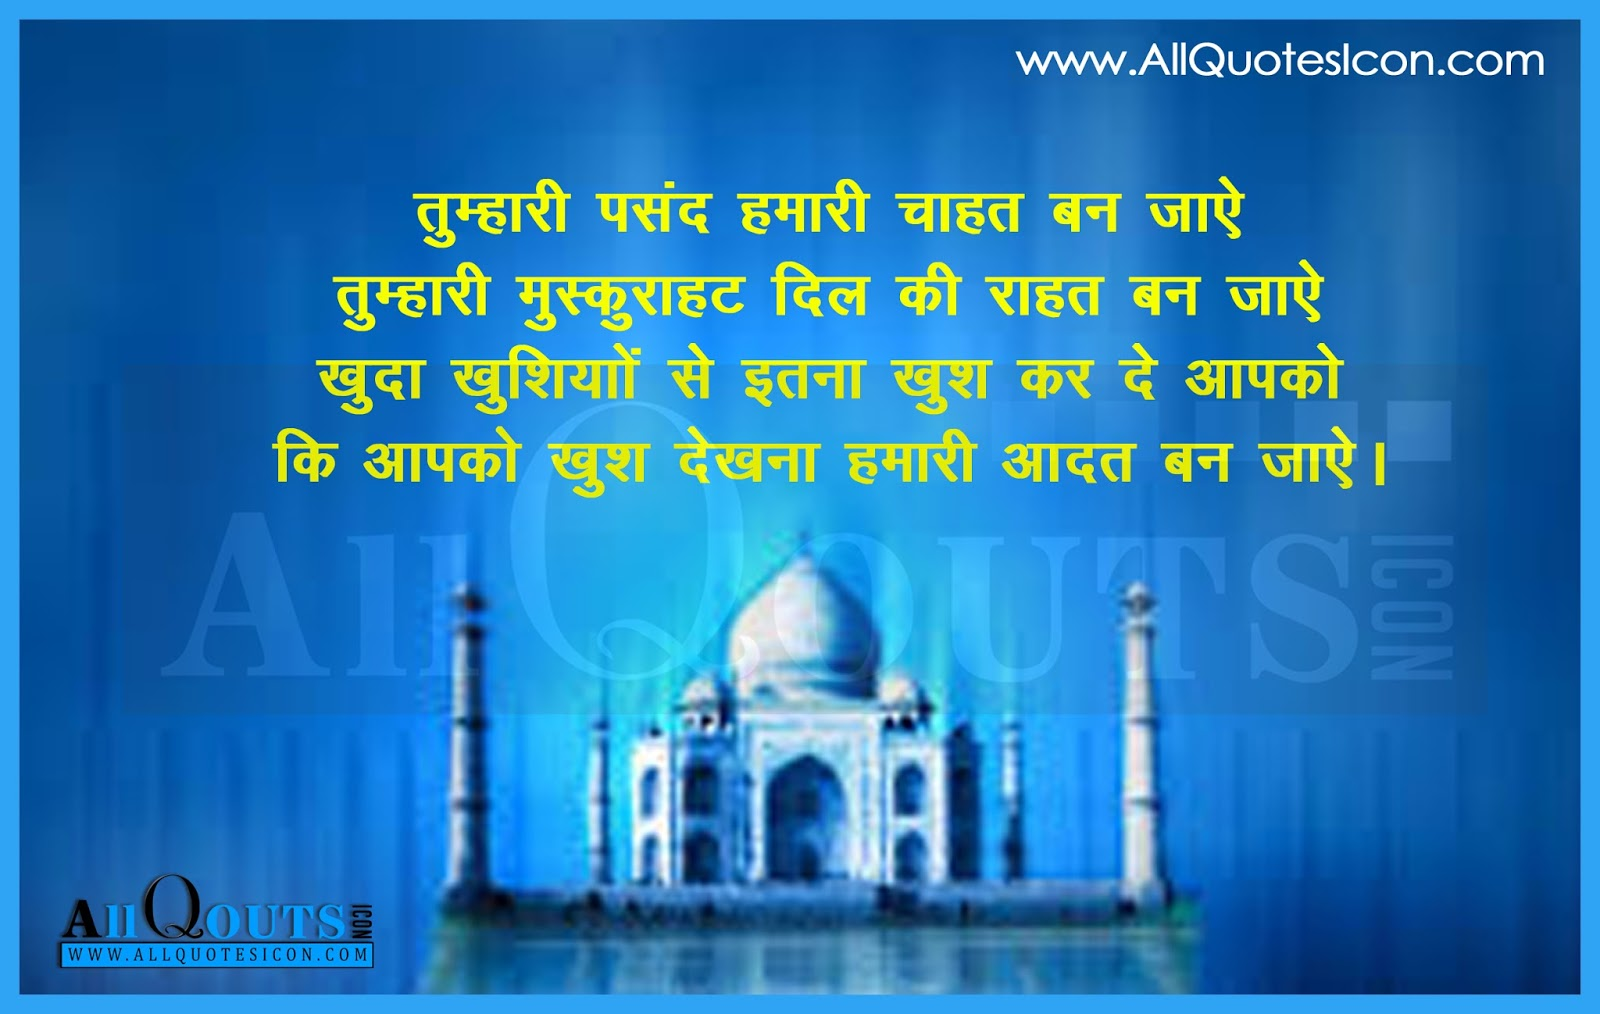 Love Feelings and Quotes in Hindi | www.AllQuotesIcon.com ...